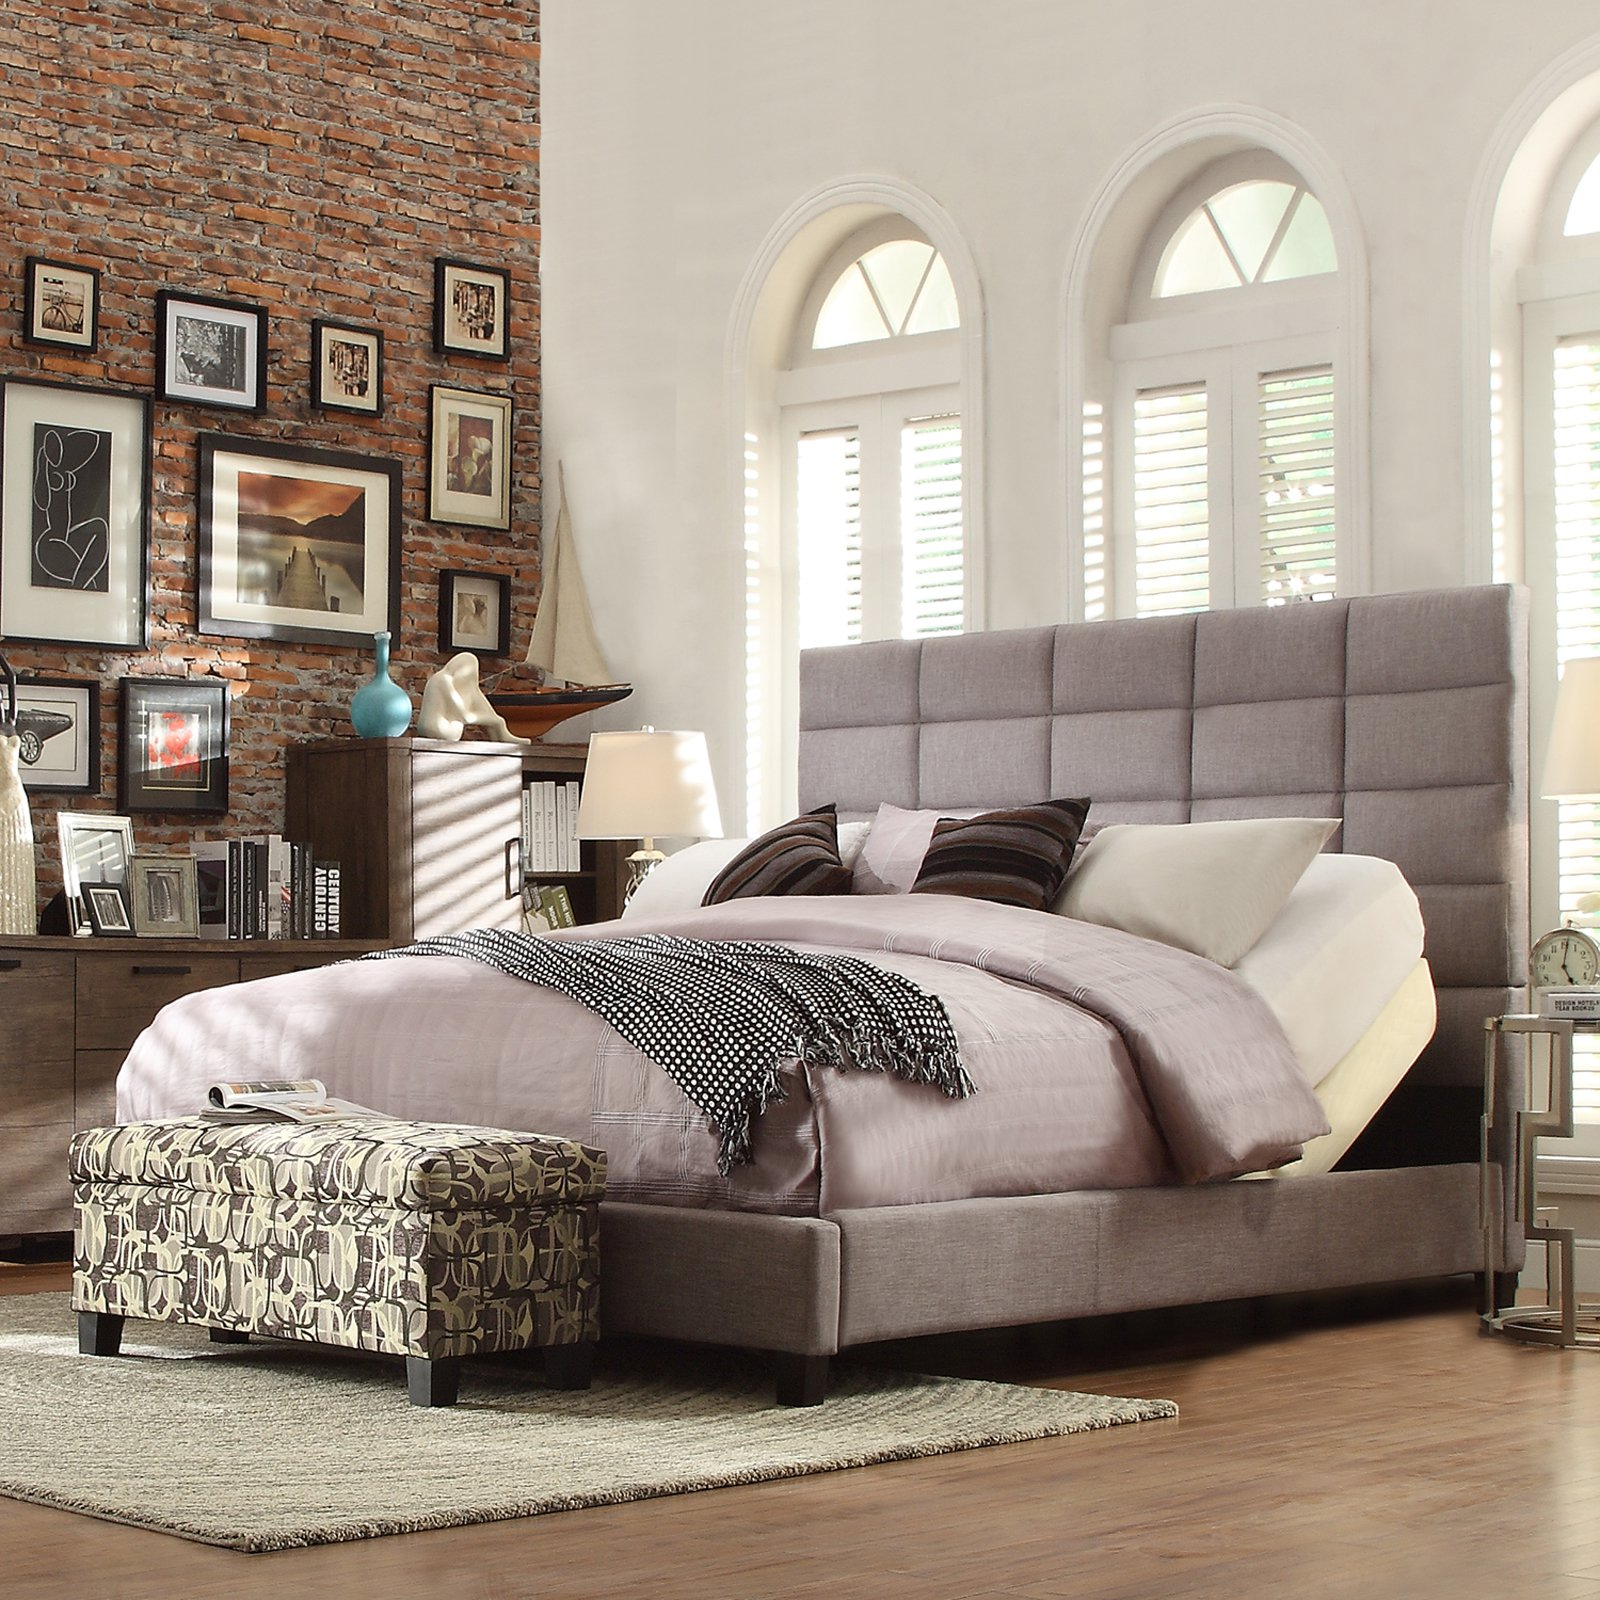 Homelegance Inspire Q Willow Upholstered Low Profile Bed